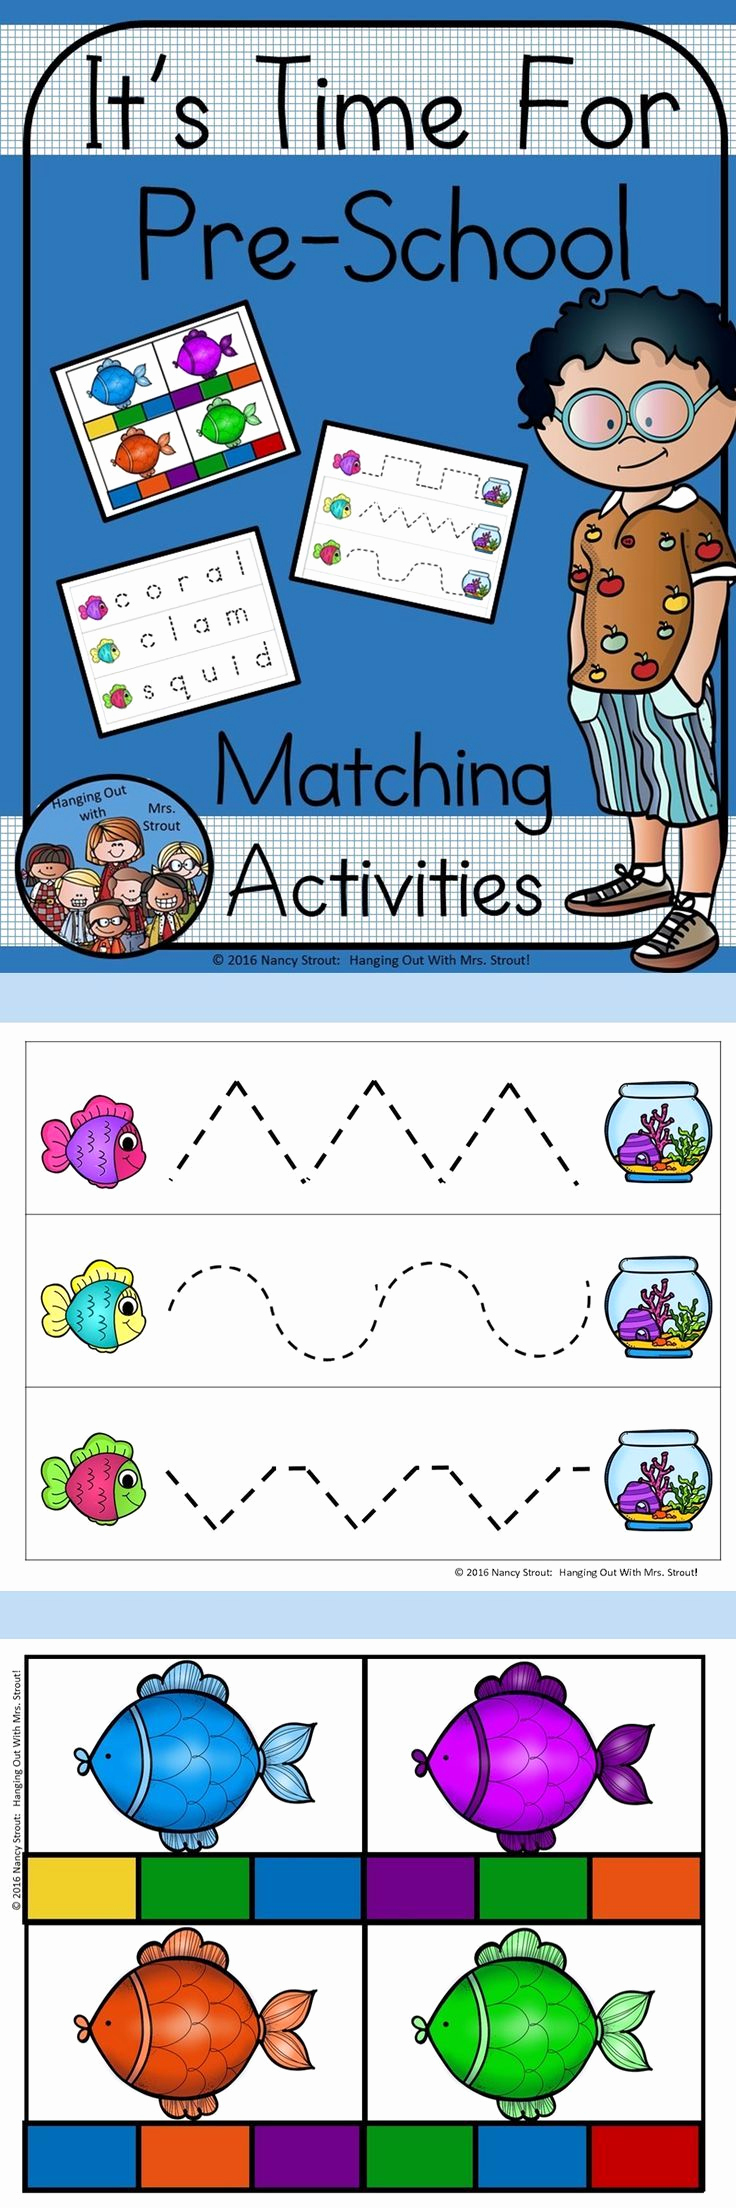 Ocean Worksheets for Preschool Inspirational Preschool Ocean Matching Activities